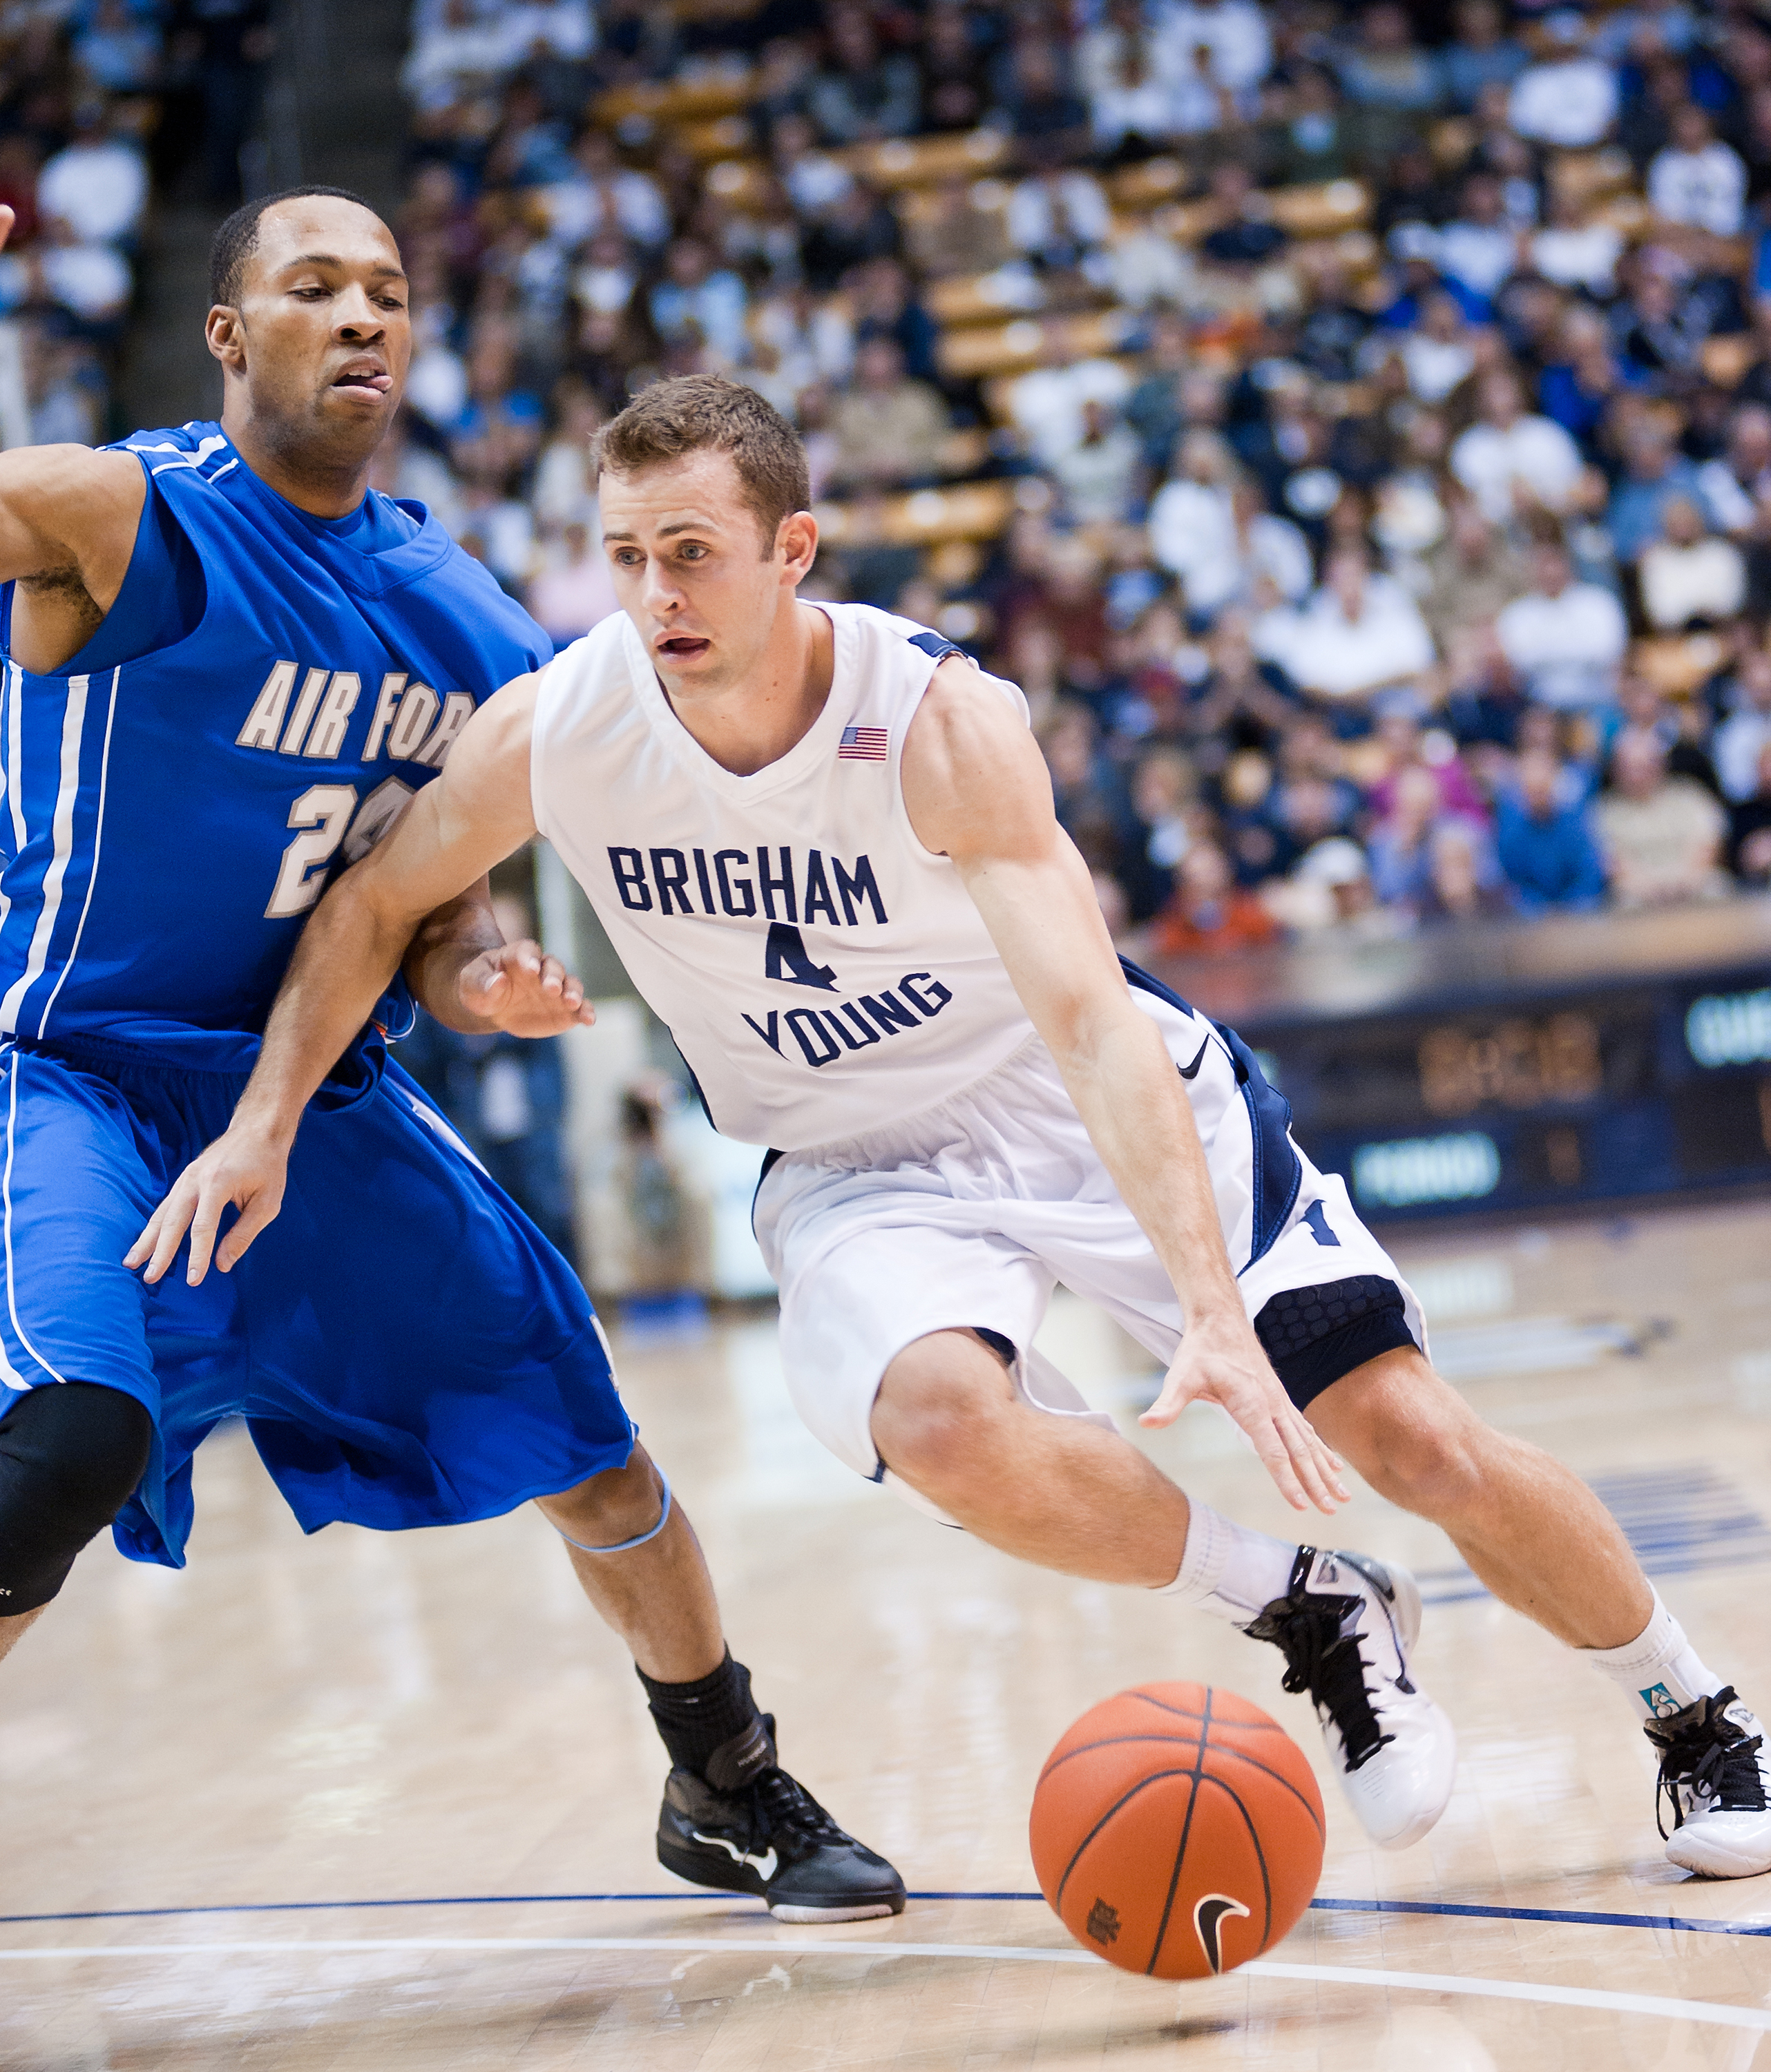 Jackson Emery dribbles past an Air Force defender in a game in 2011. BYU defeated Air Force 76-66. Photo by Chris Bunker.